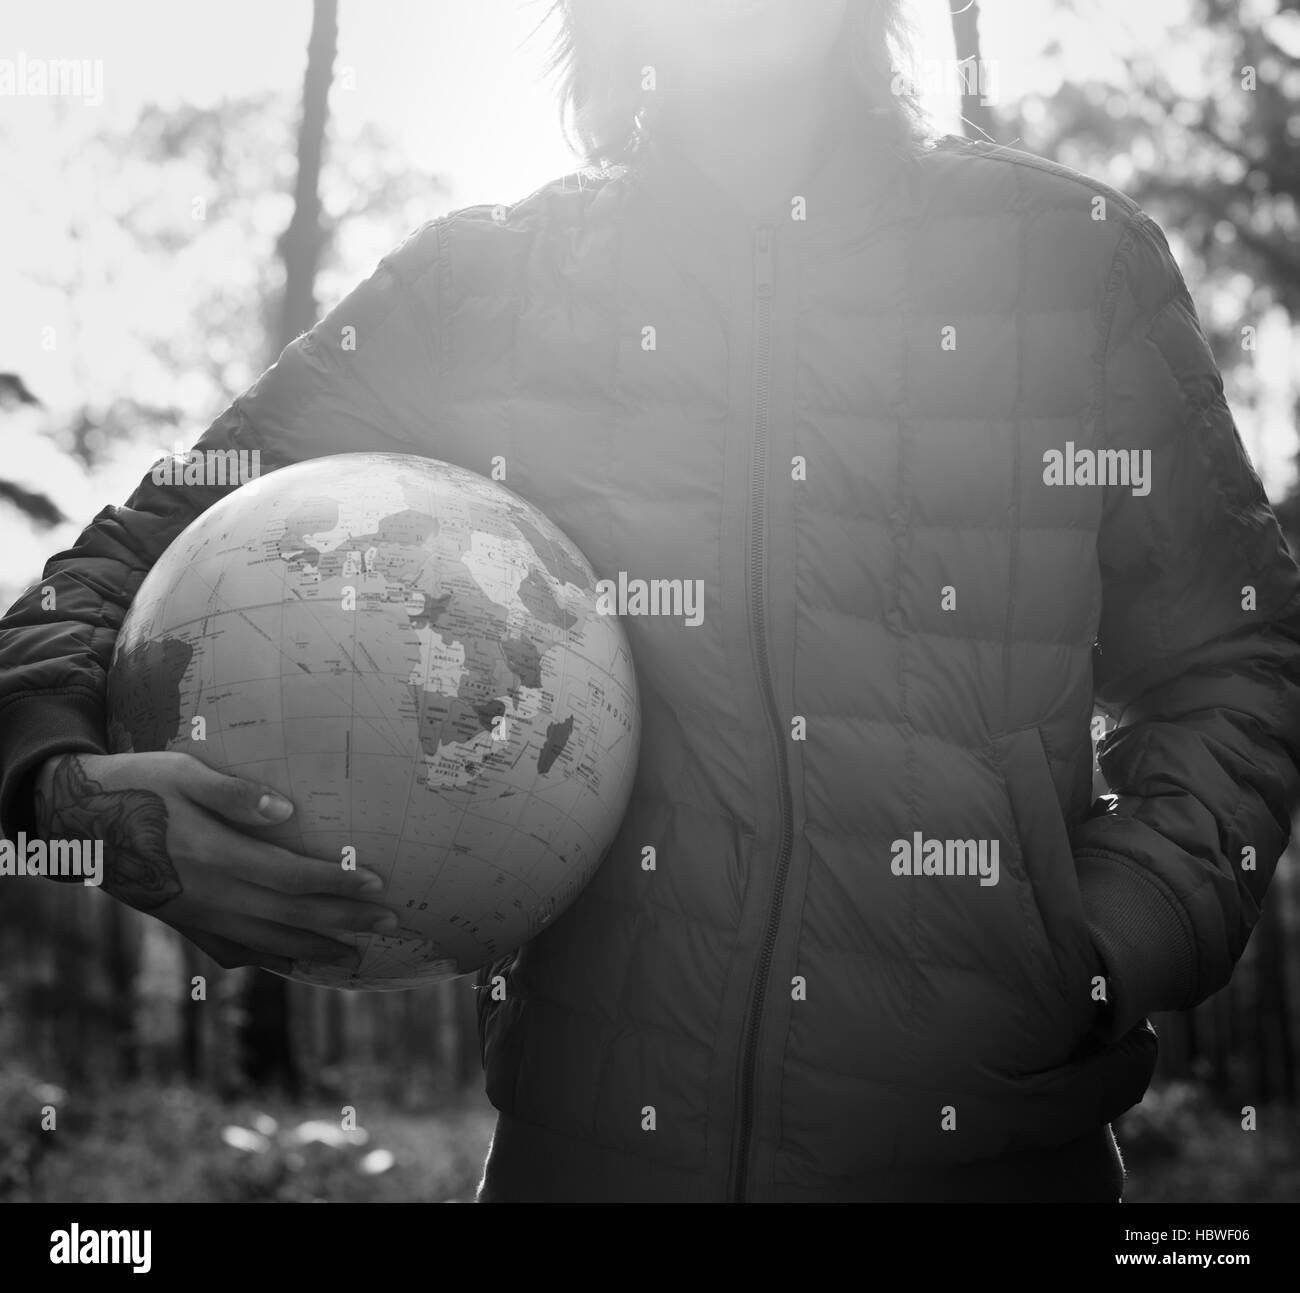 Globe Global Sphere World Cartography Earth Concept - Stock Image